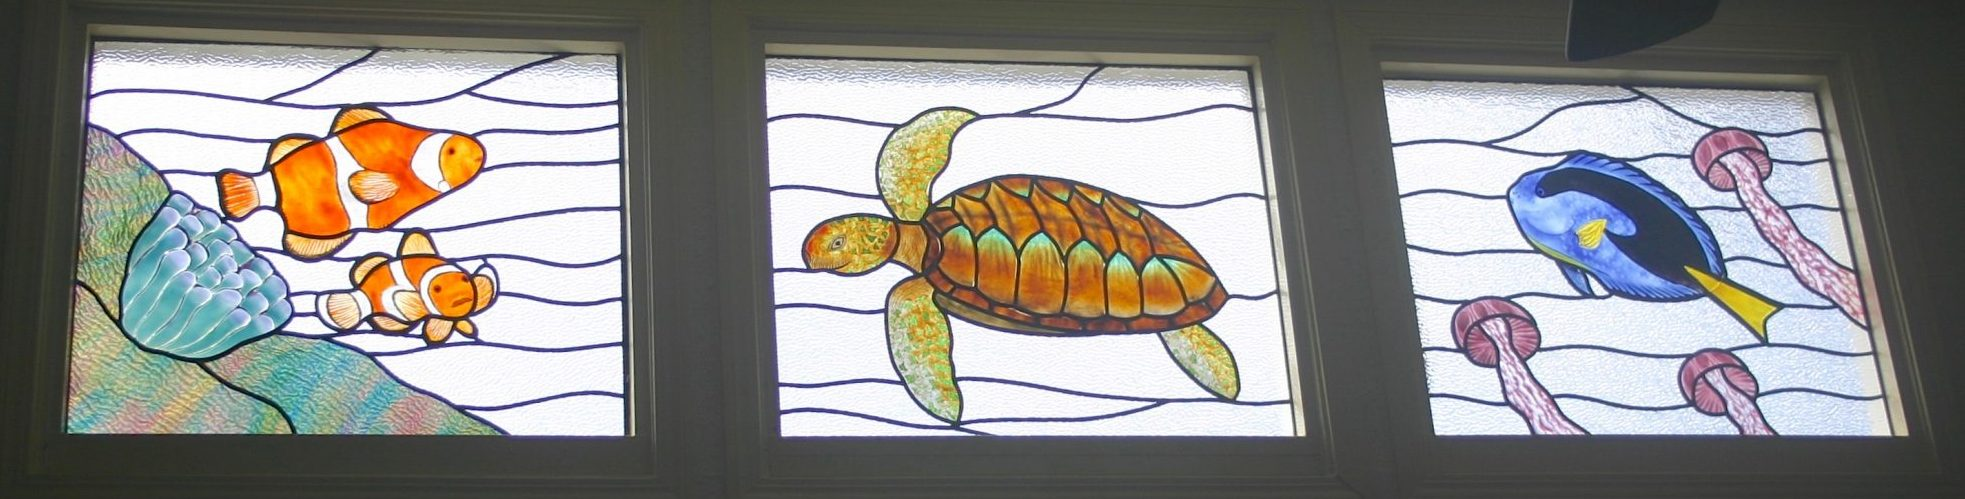 15.1.finding.nemo.stained.glass